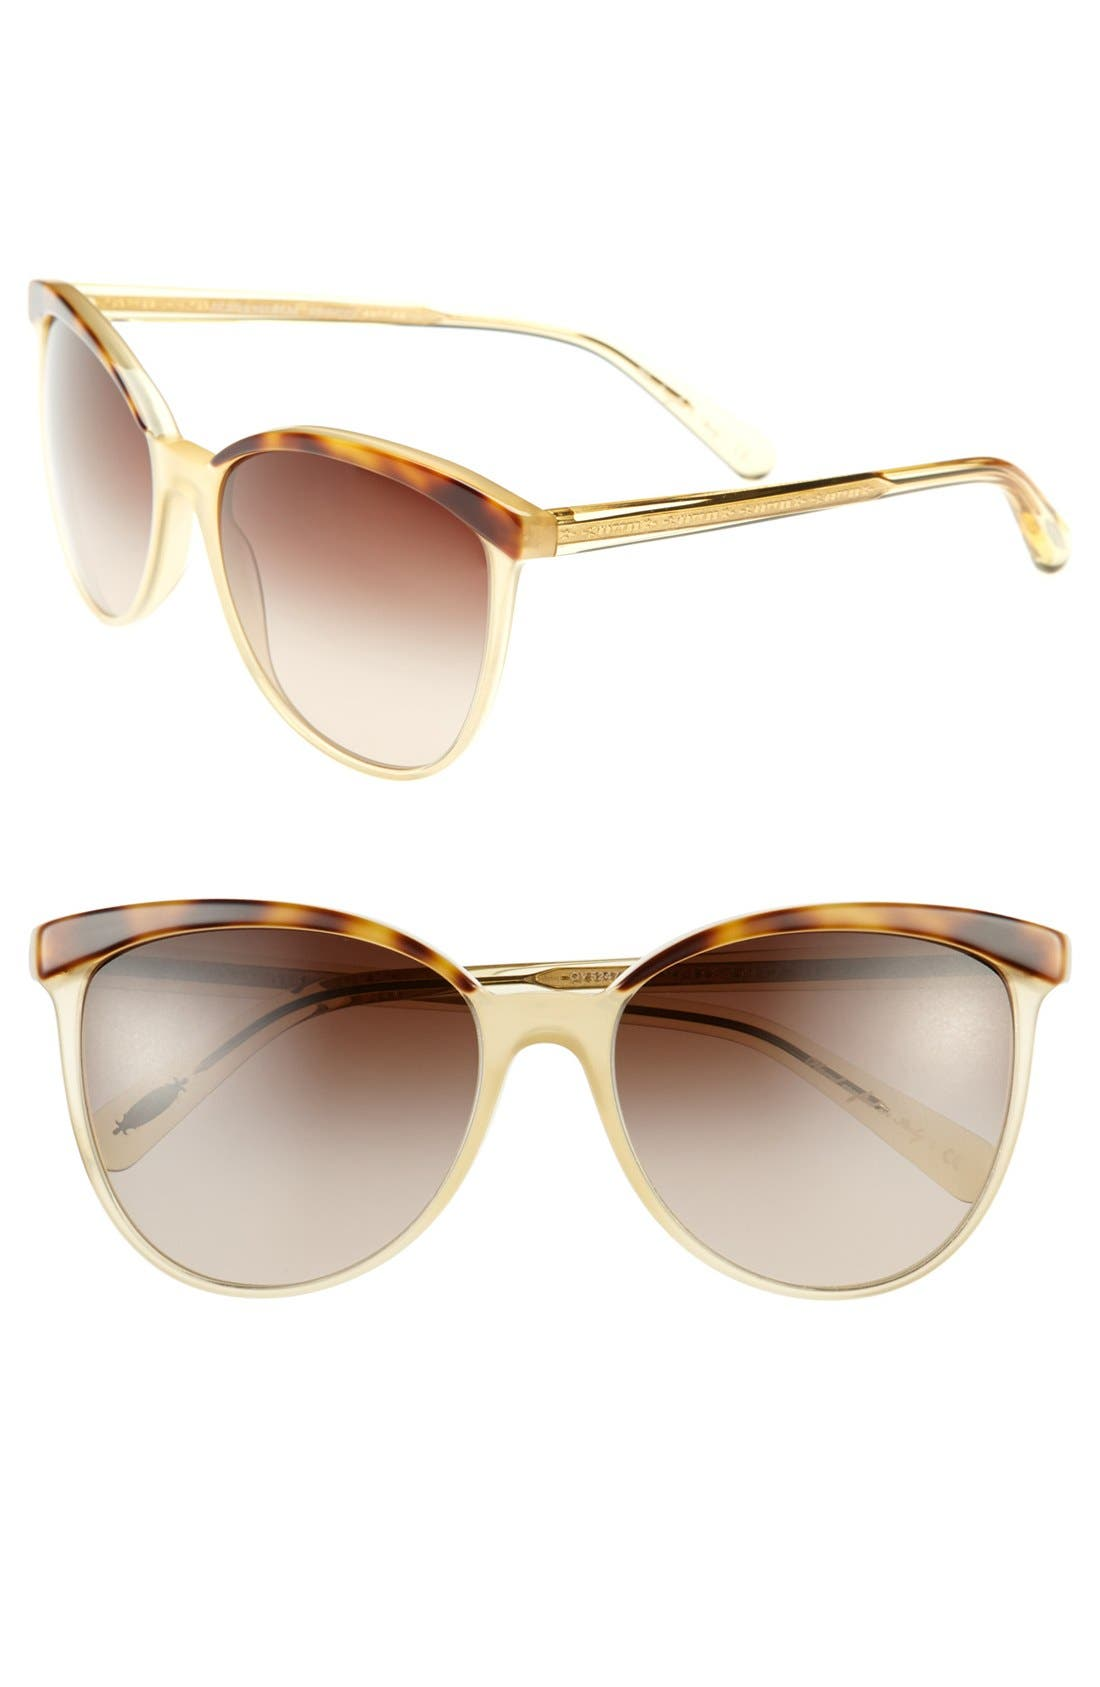 Main Image - Oliver Peoples 'Ria' 58mm Sunglasses